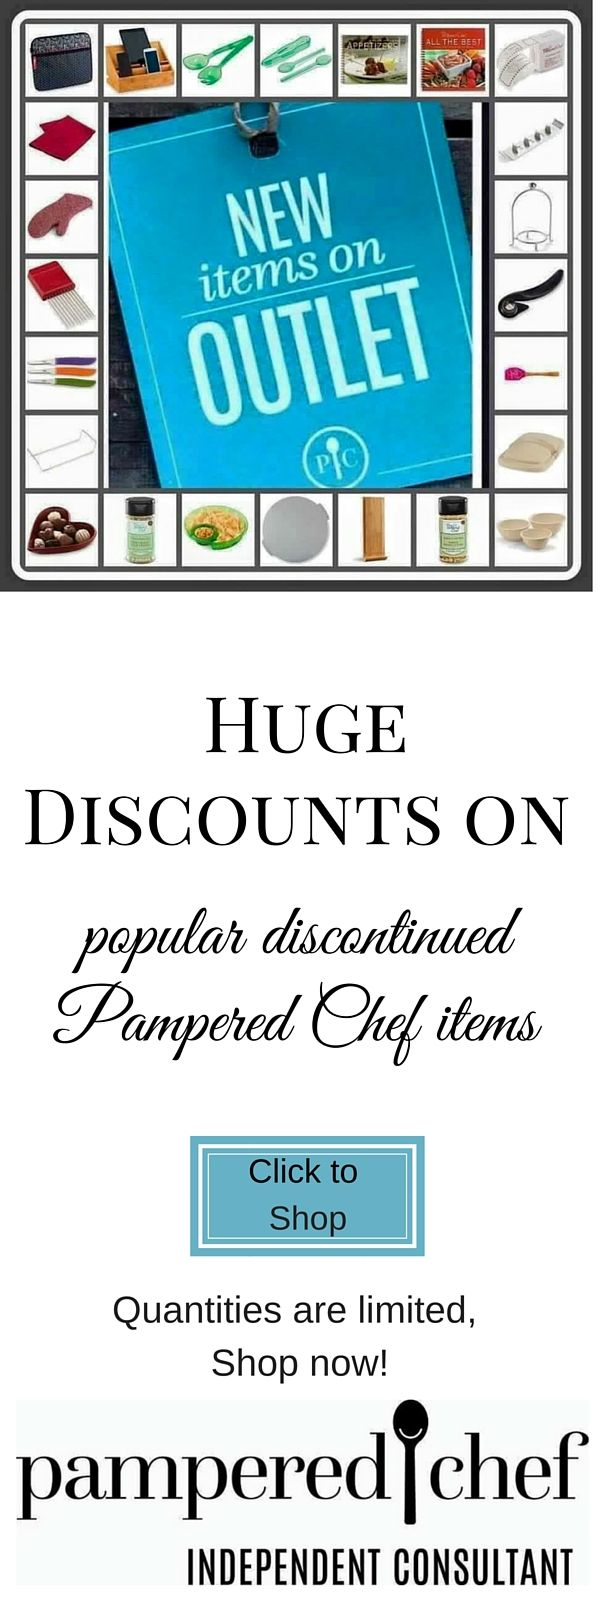 Oct 25, · Do consultants get a flat discount on products we buy? I know we can buy the sample kits at 50?% off but do we get a discount off anything in the catalog? Thanks.